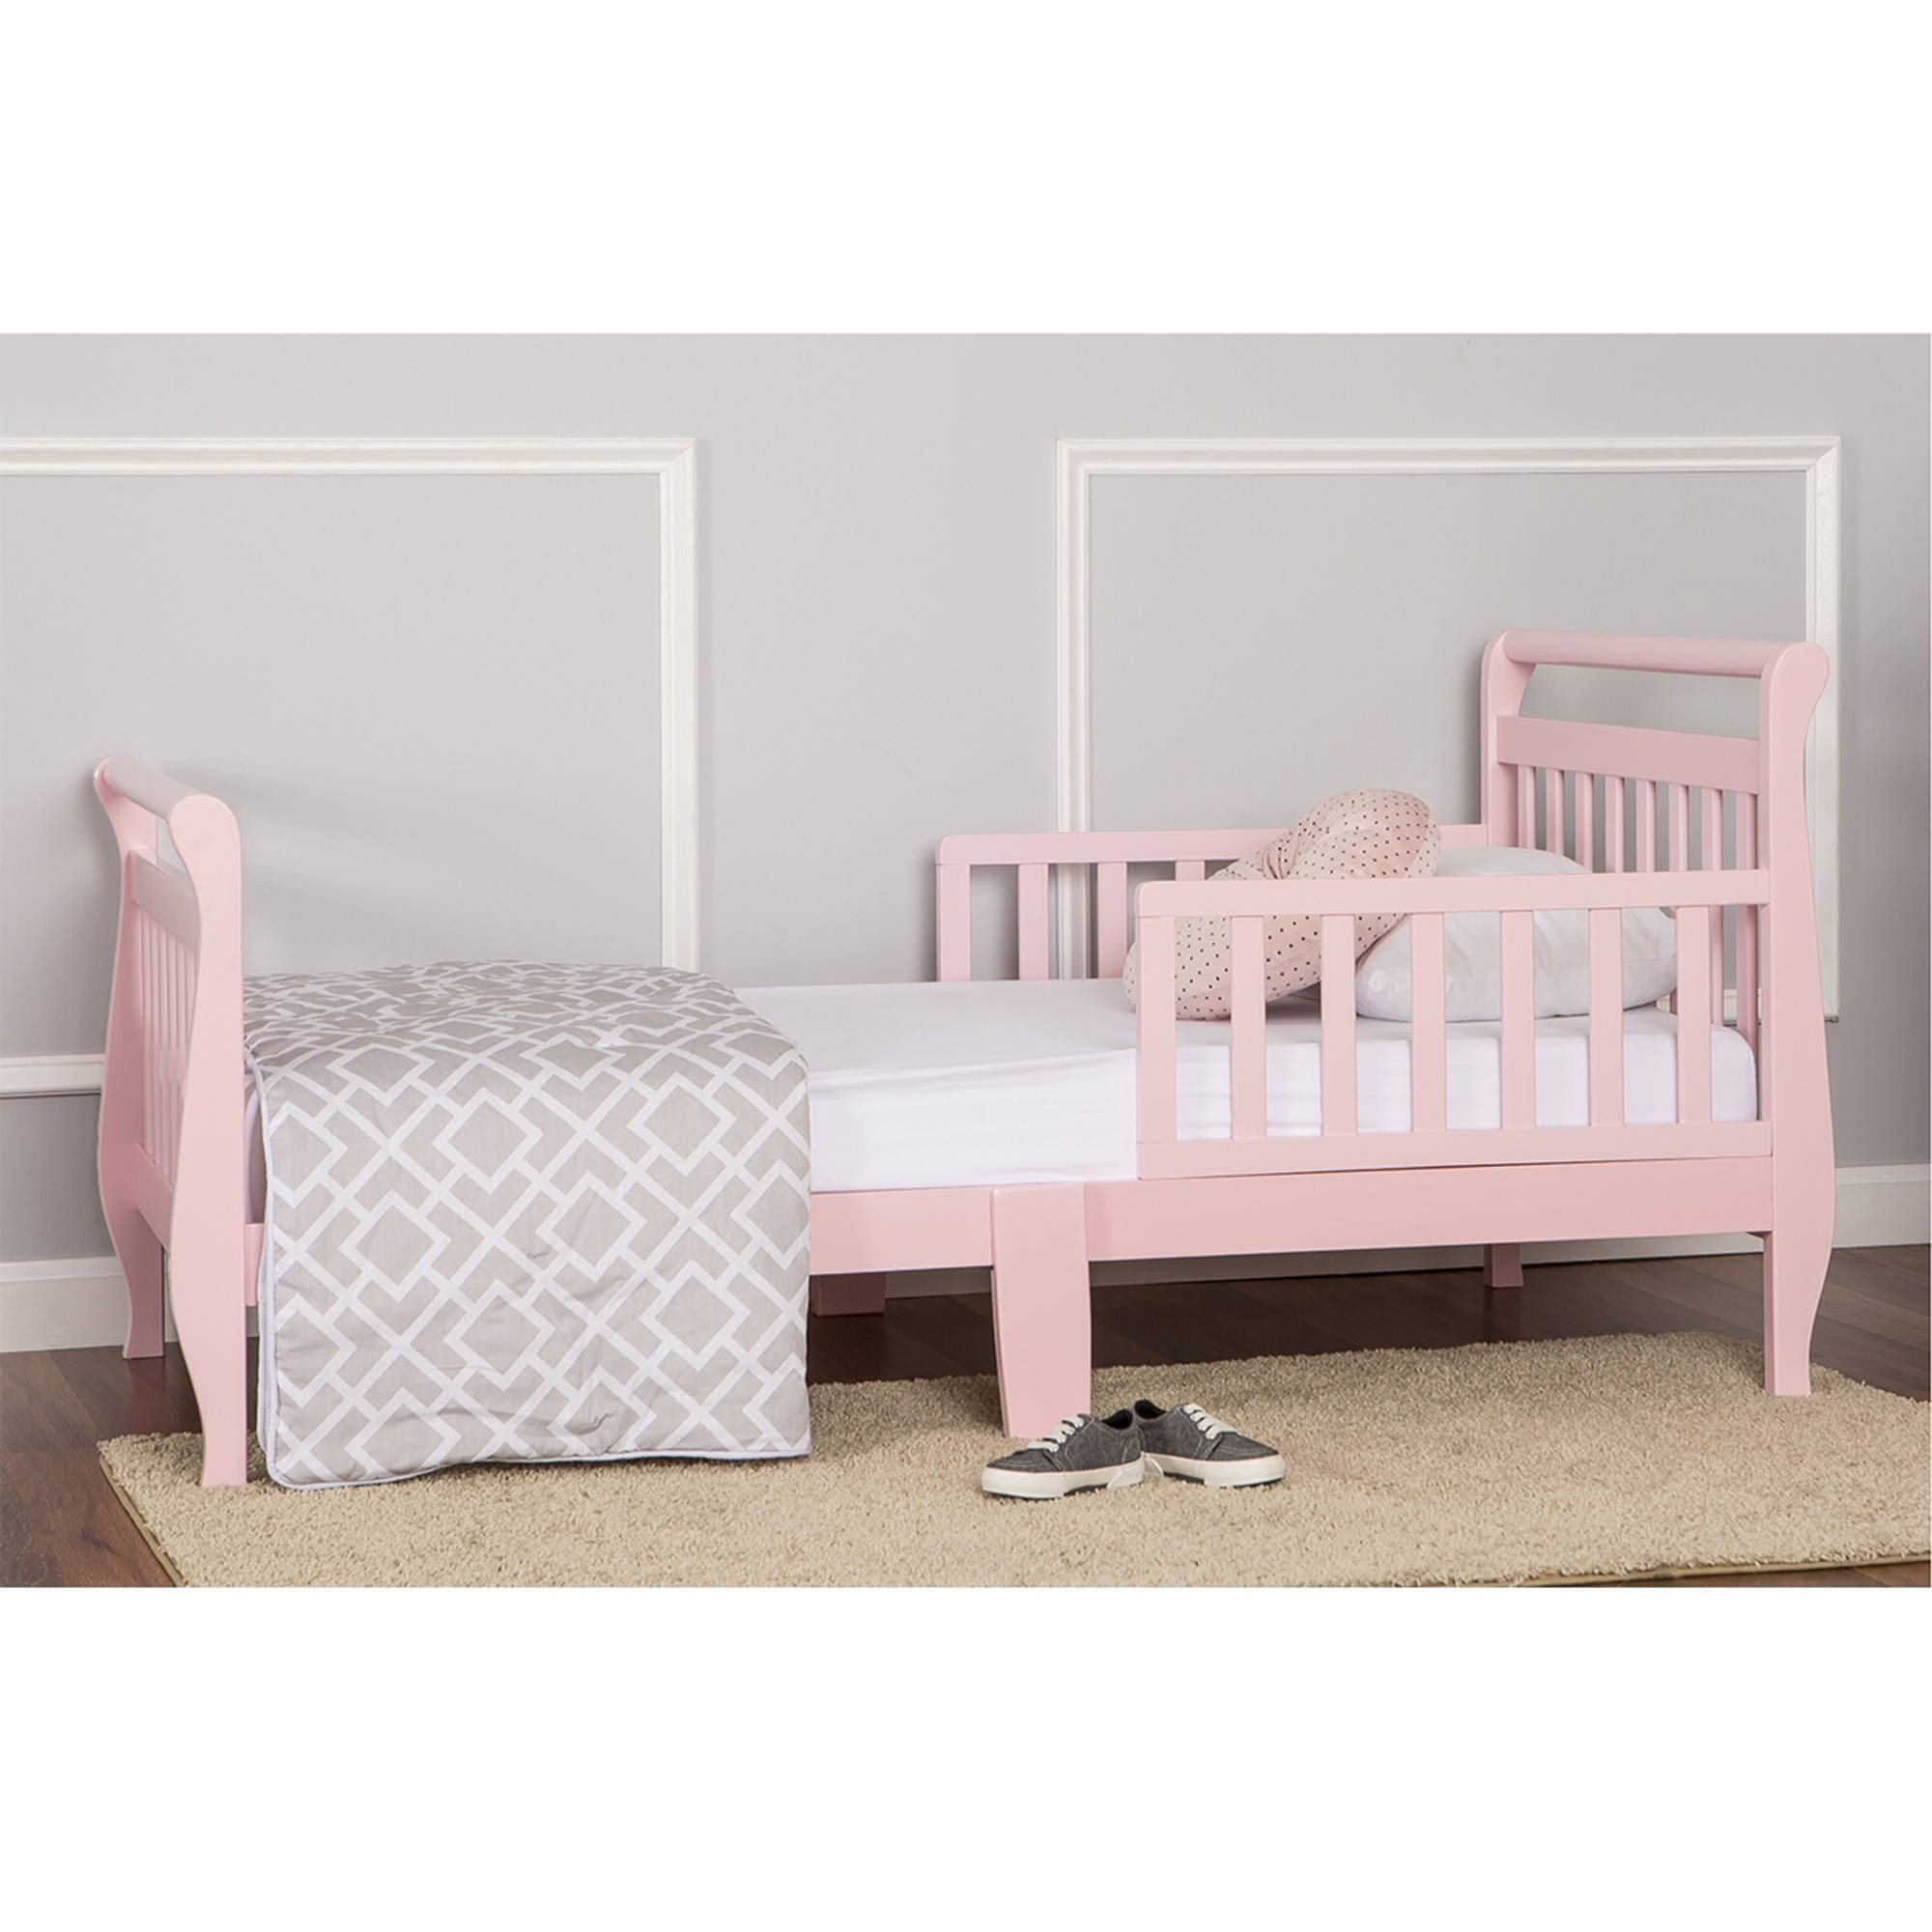 Cheap Toddler Beds Dream On Me Sleigh Toddler Bed Multiple Finishes With Bed Rails